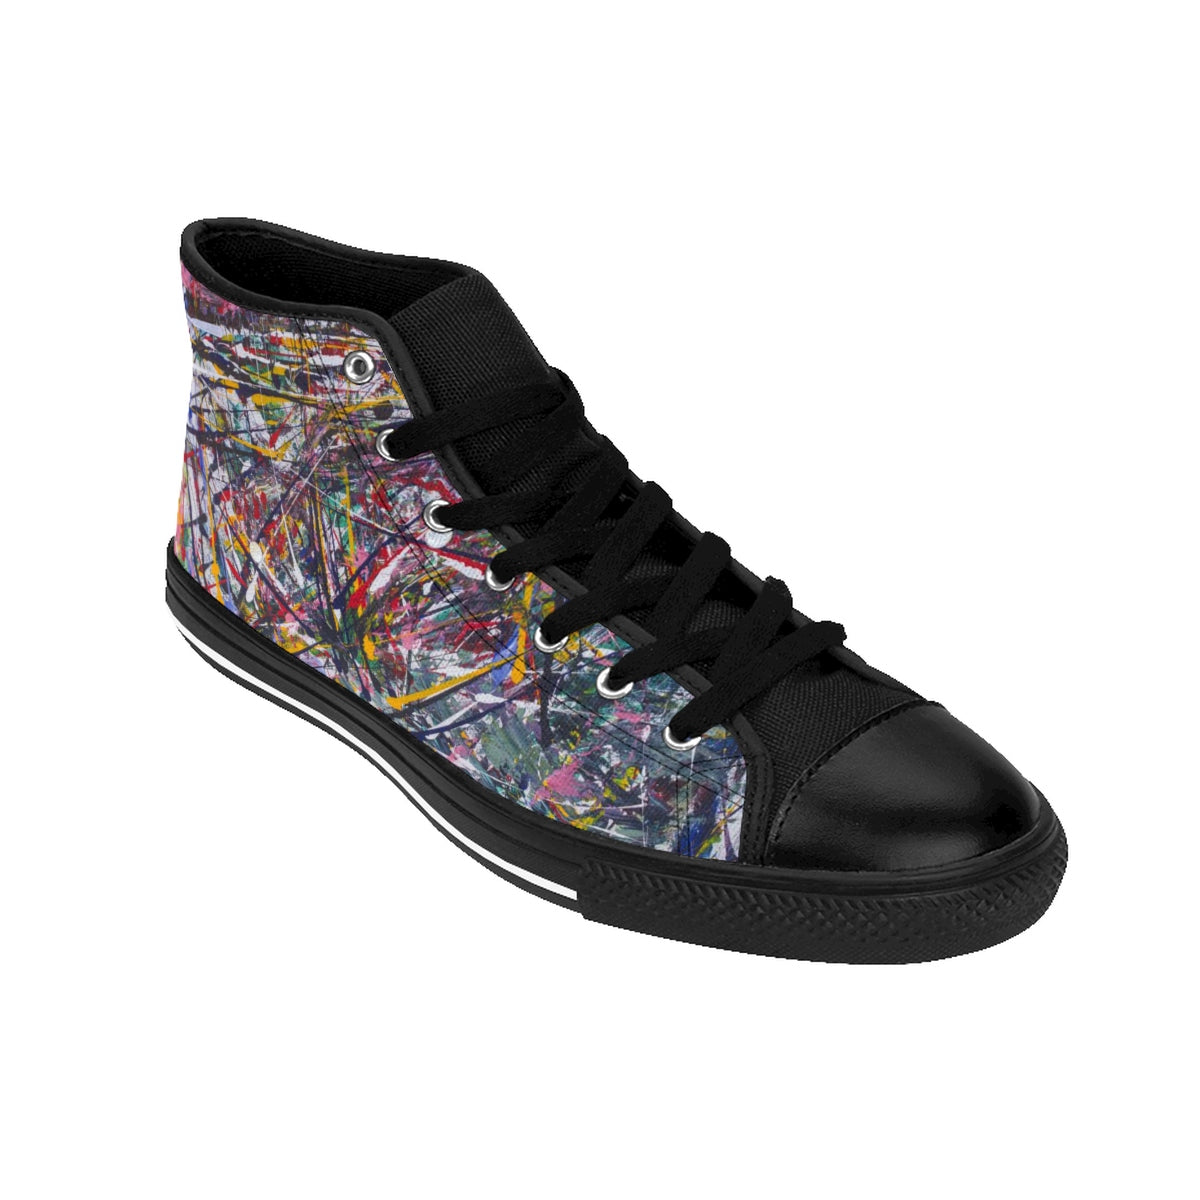 self portrait vagab0nd Women's High-top Sneakers